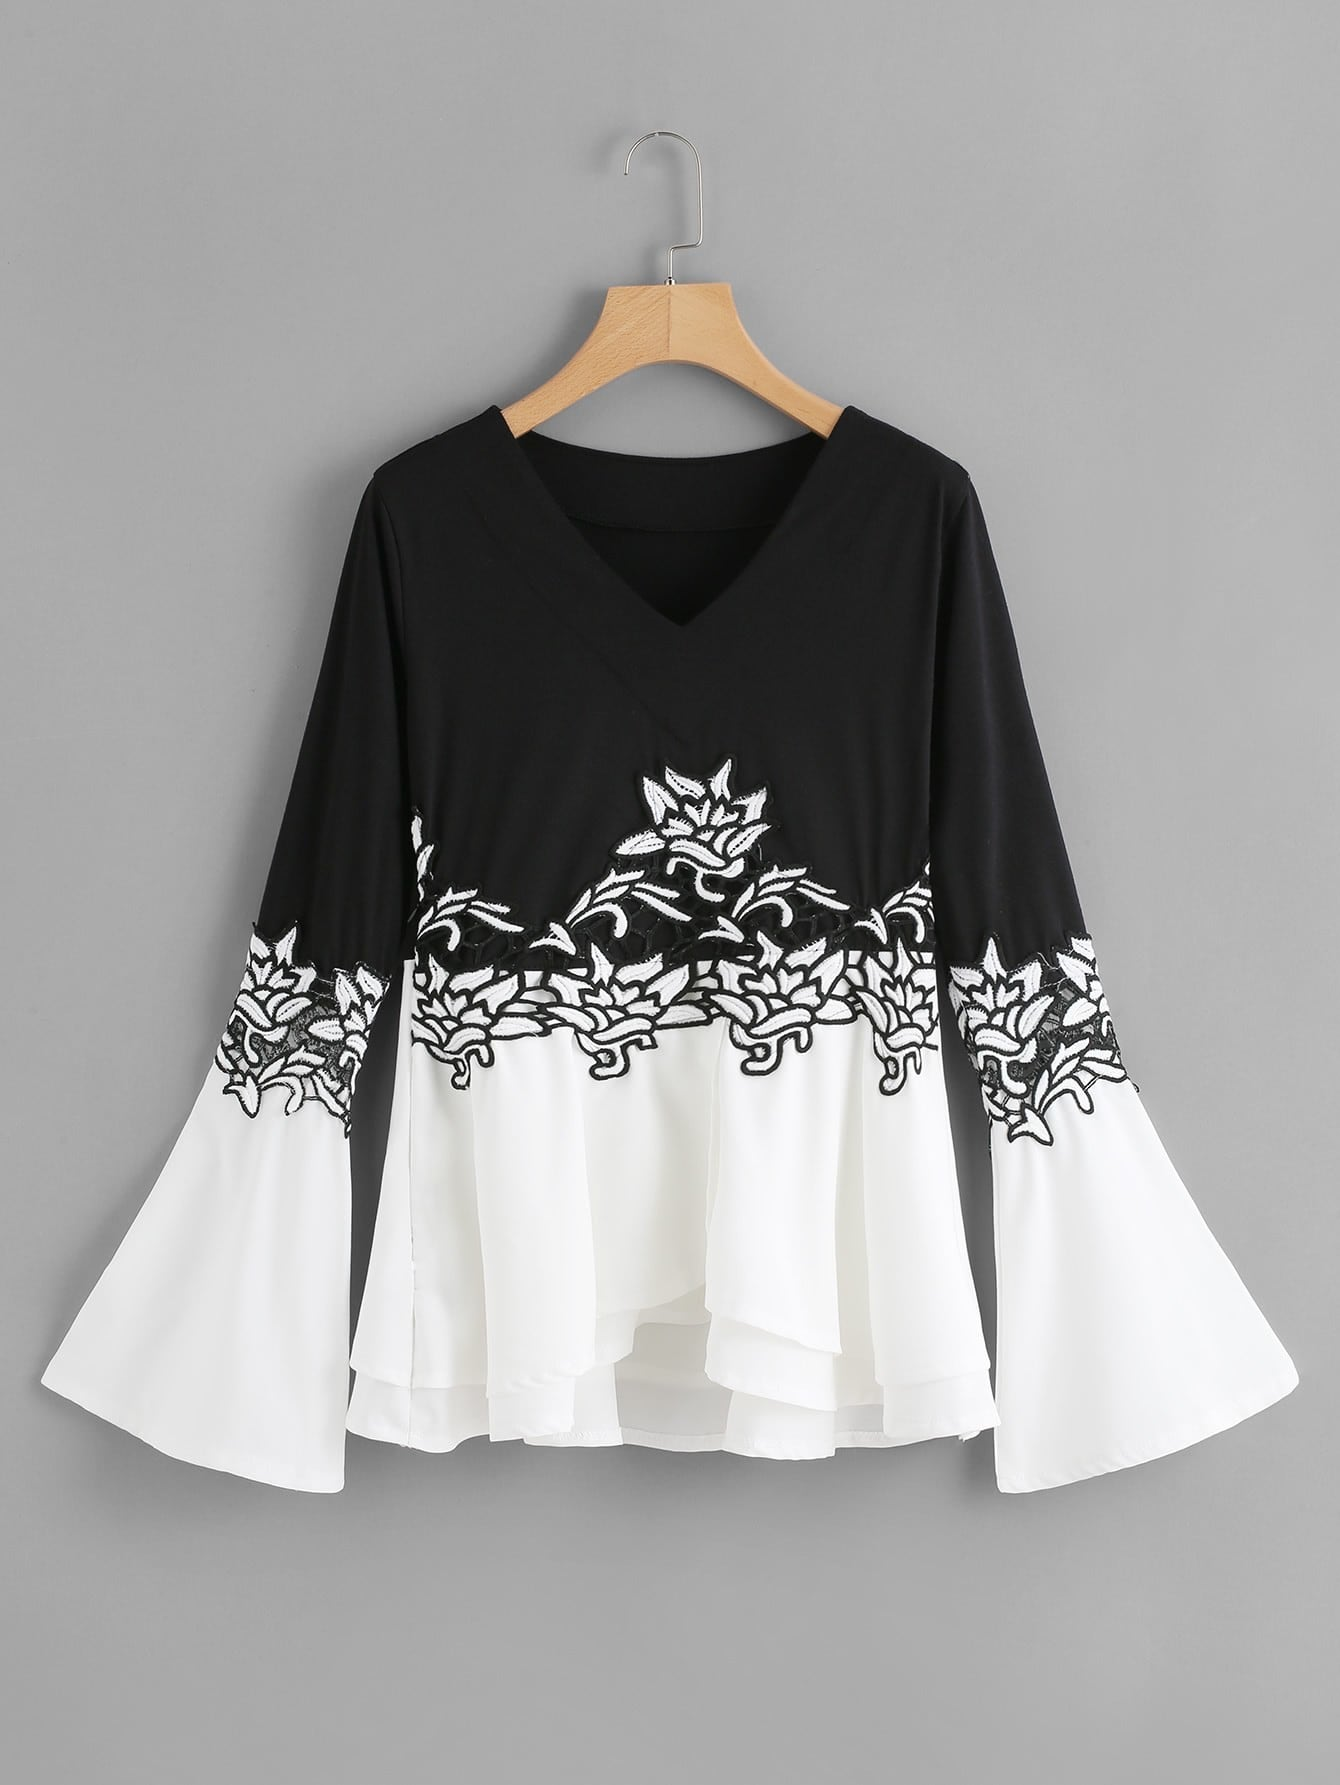 Two Tone Embroidered Applique T-shirt lace applique two tone t shirt